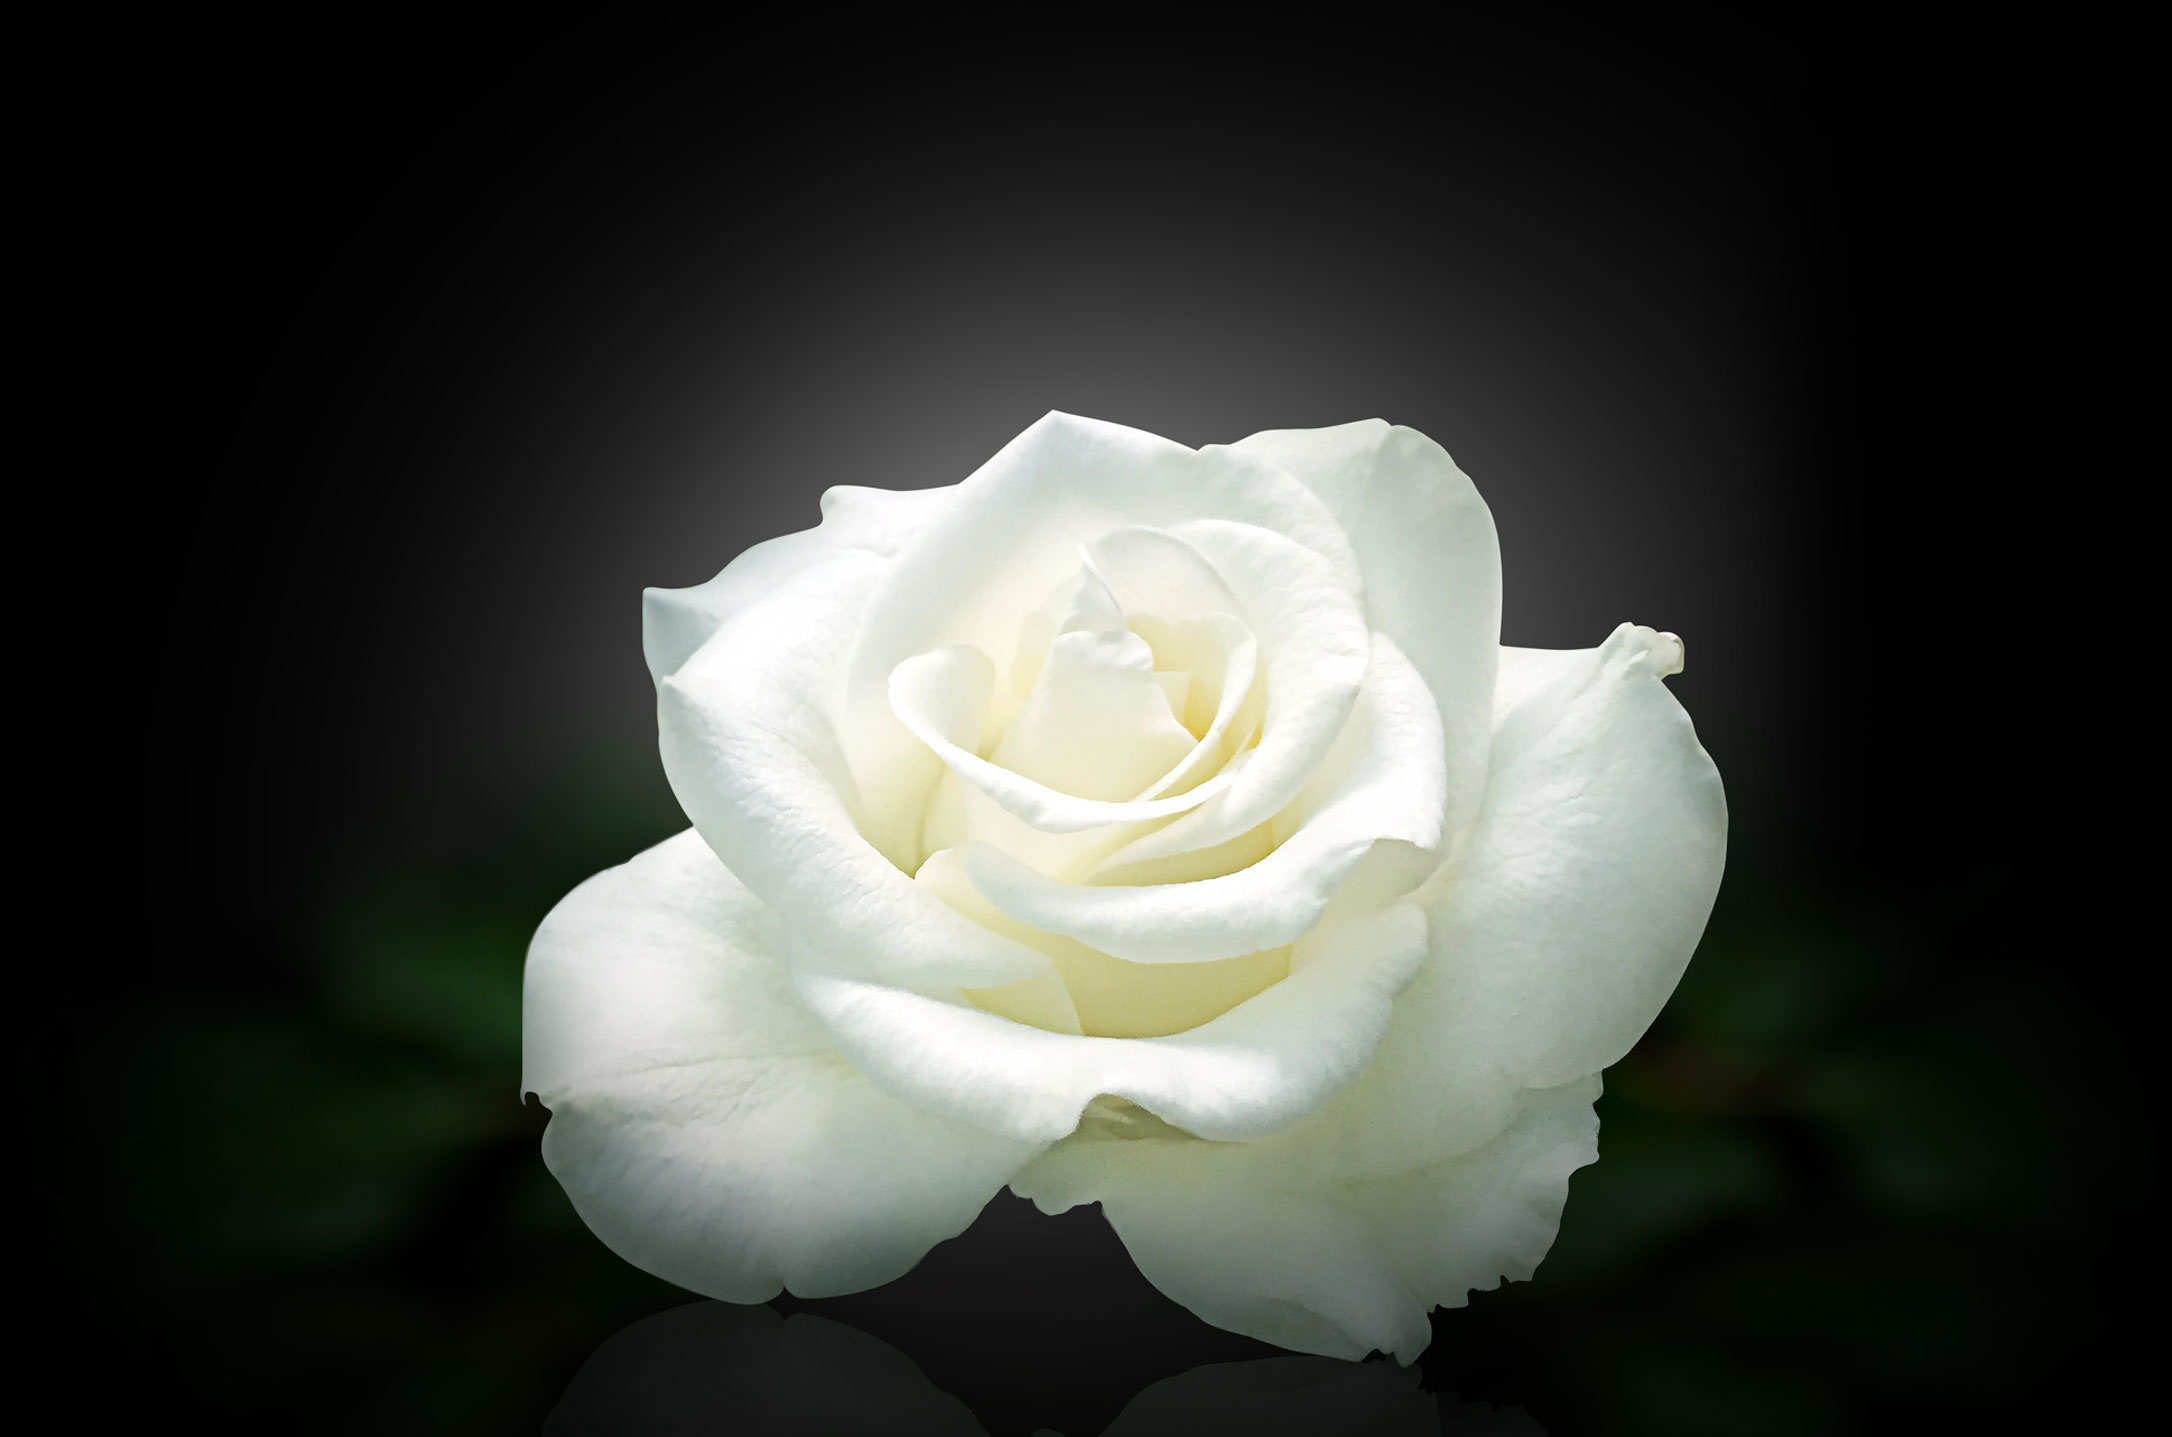 Image of a Rose